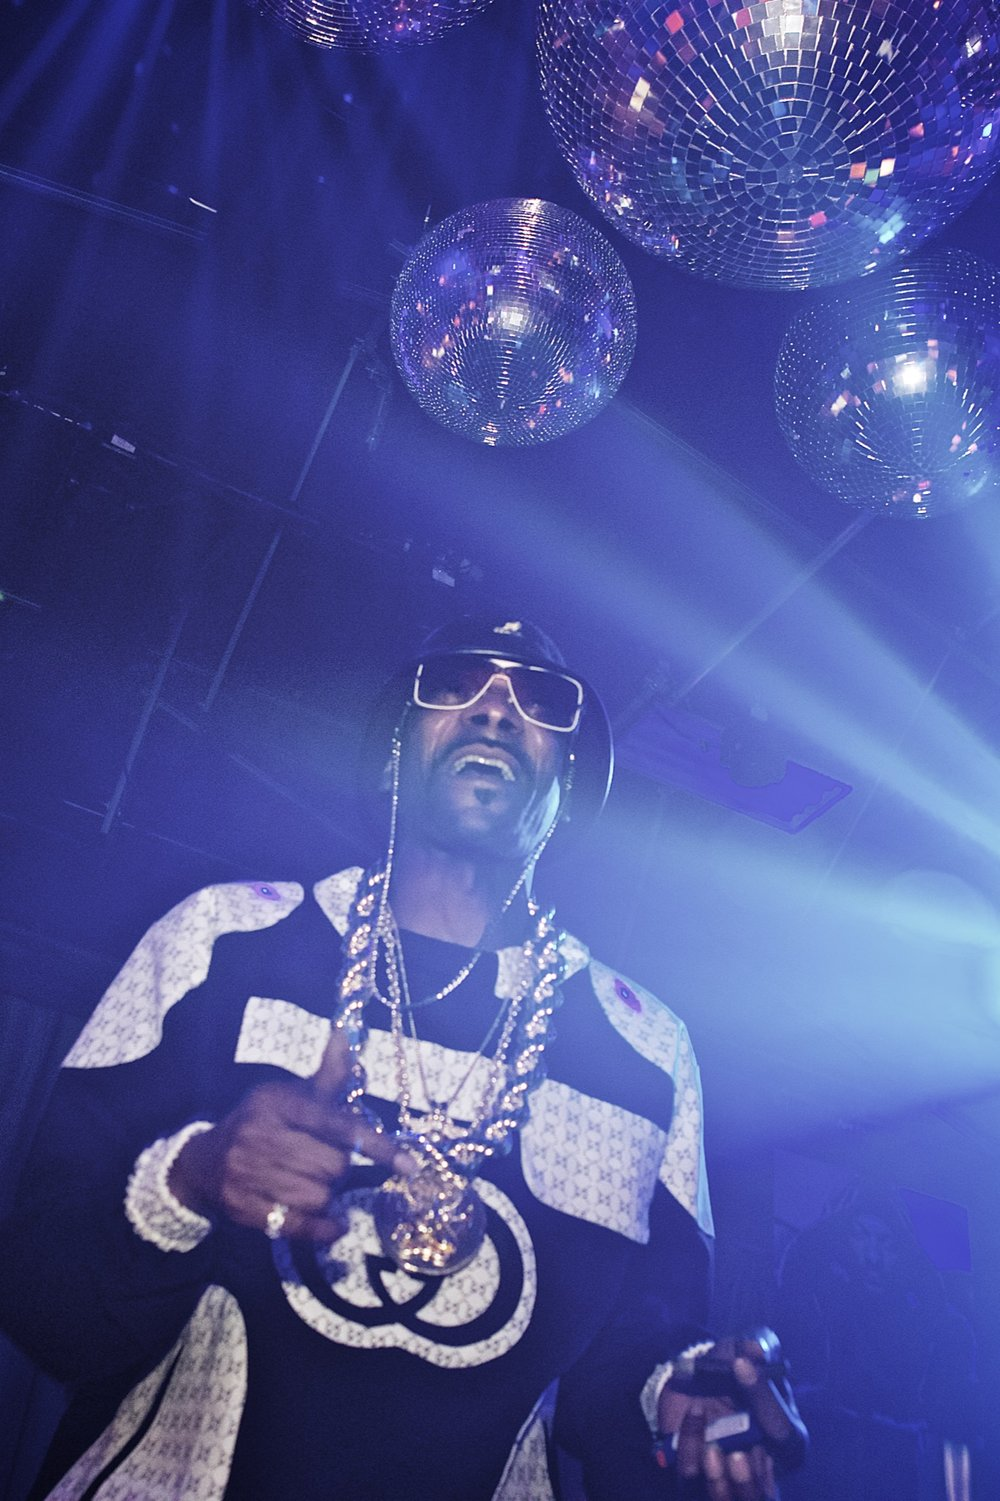 King Ice at Snoop Dogg C Day Party.16.jpg